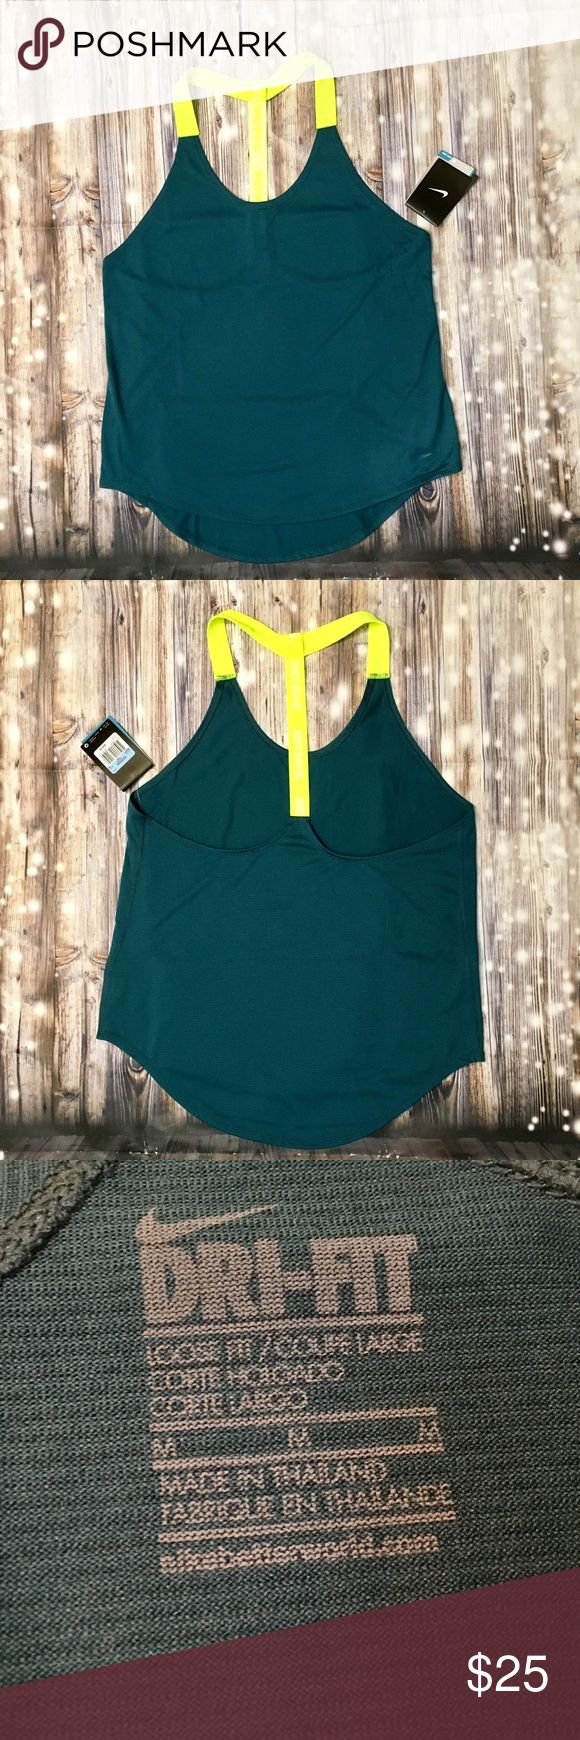 Nike dri-fit teal/neon yellow striped T-back tank Brand new with tags, dri-fit teal/neon yellow striped T-back workout tank top, super cute and comfortable, back strap says 'JUST DO IT' in white, such a unique beautiful style, great for working out or running errands. Nike Tops Tank Tops